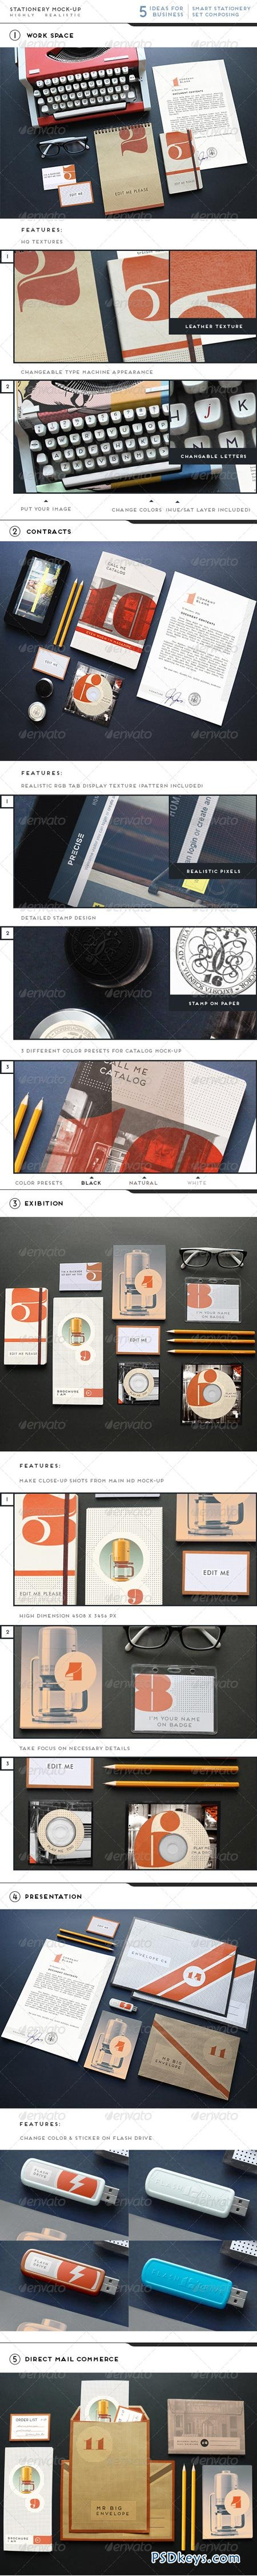 Realistic Stationery Branding Mock-Up 6579553